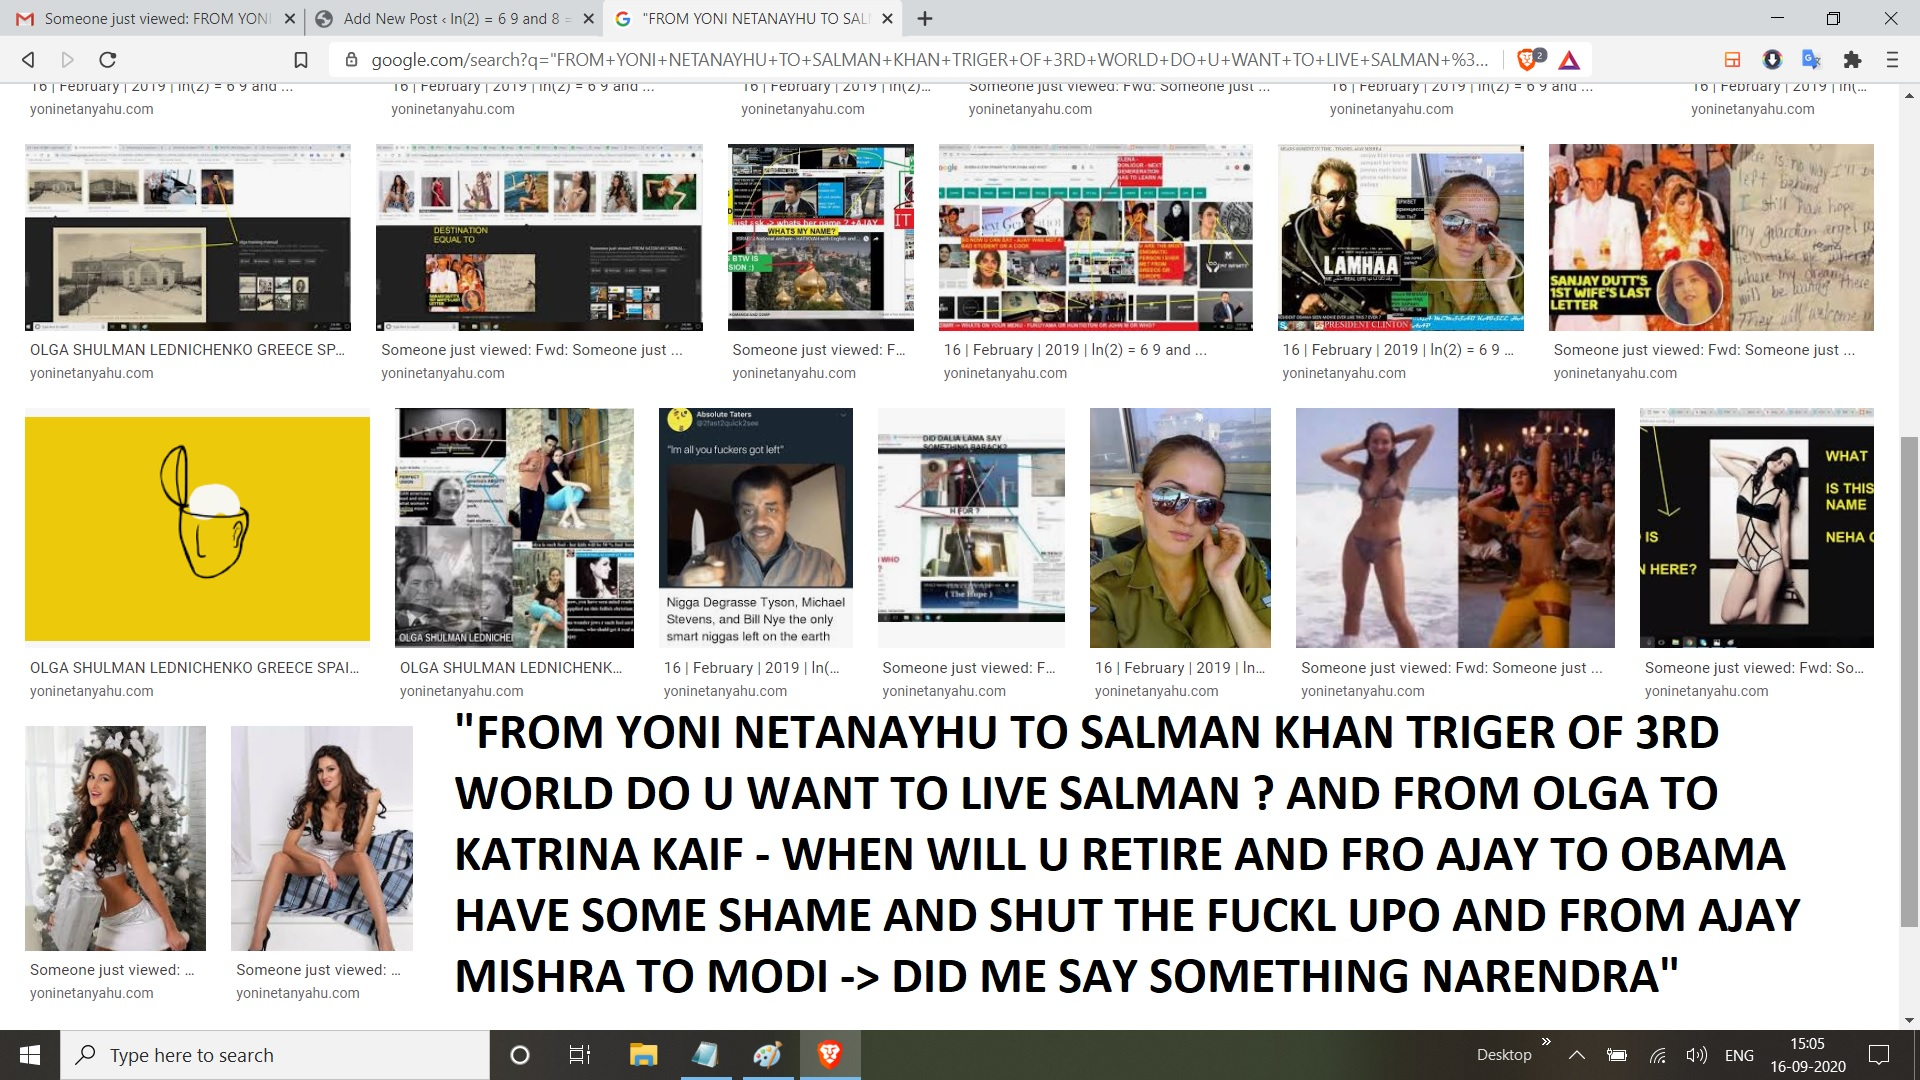 """FROM YONI NETANAYHU TO SALMAN KHAN TRIGER OF 3RD WORLD DO U WANT TO LIVE SALMAN ? AND FROM OLGA TO KATRINA KAIF - WHEN WILL U RETIRE AND FRO AJAY TO OBAMA HAVE SOME SHAME AND SHUT THE FUCKL UPO AND FROM AJAY MISHRA TO MODI -> DID ME SAY SOMETHING NARENDRA"""